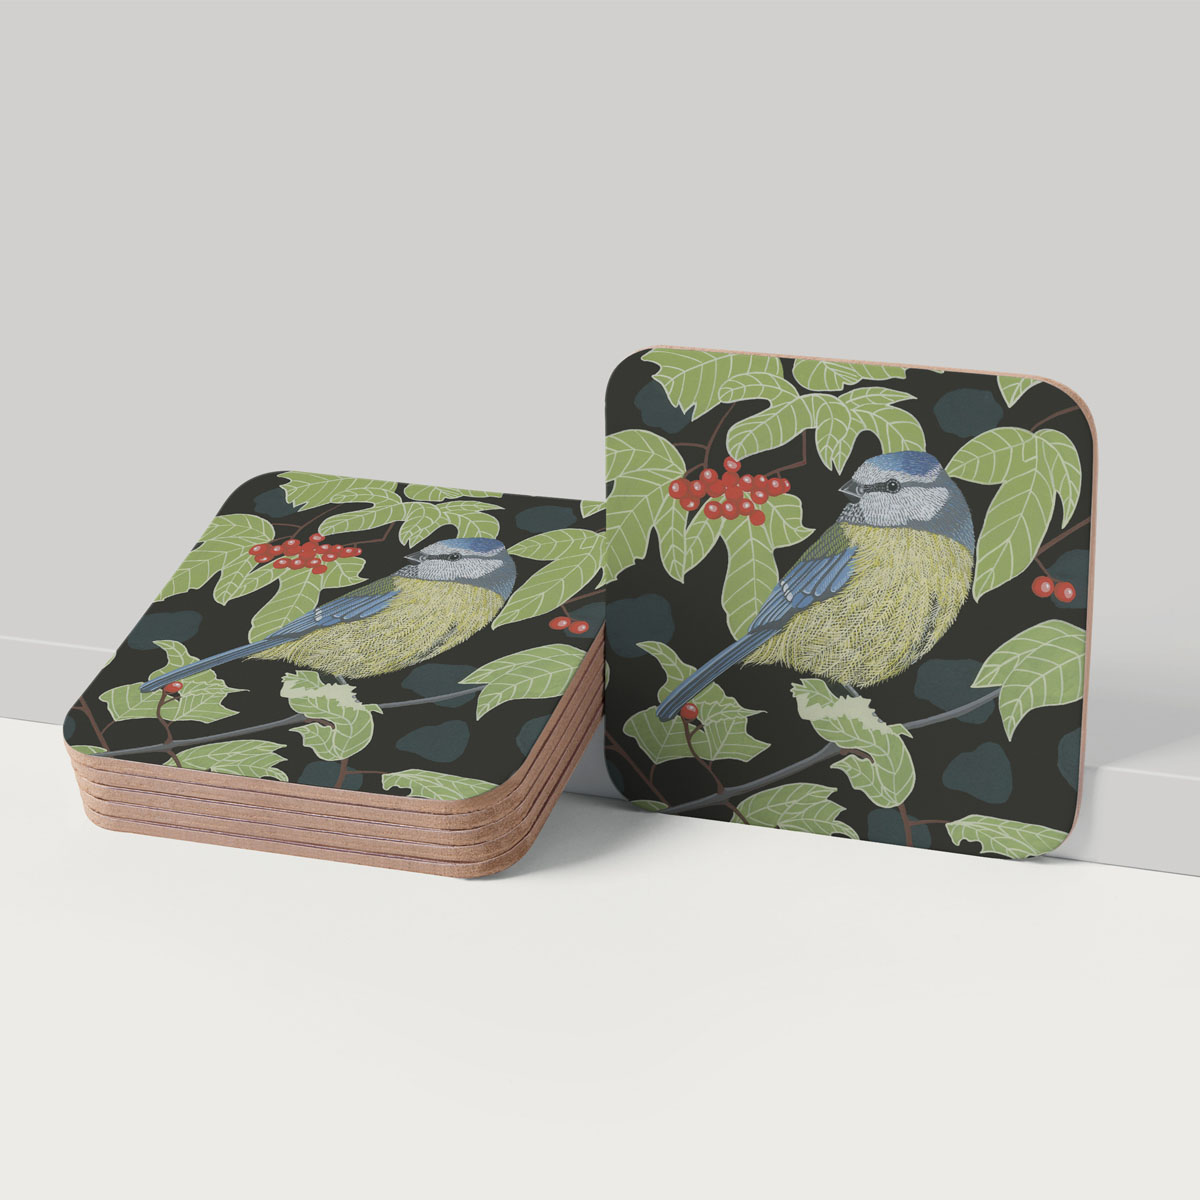 Blue Tit Bird Placemat And Coaster Tableware